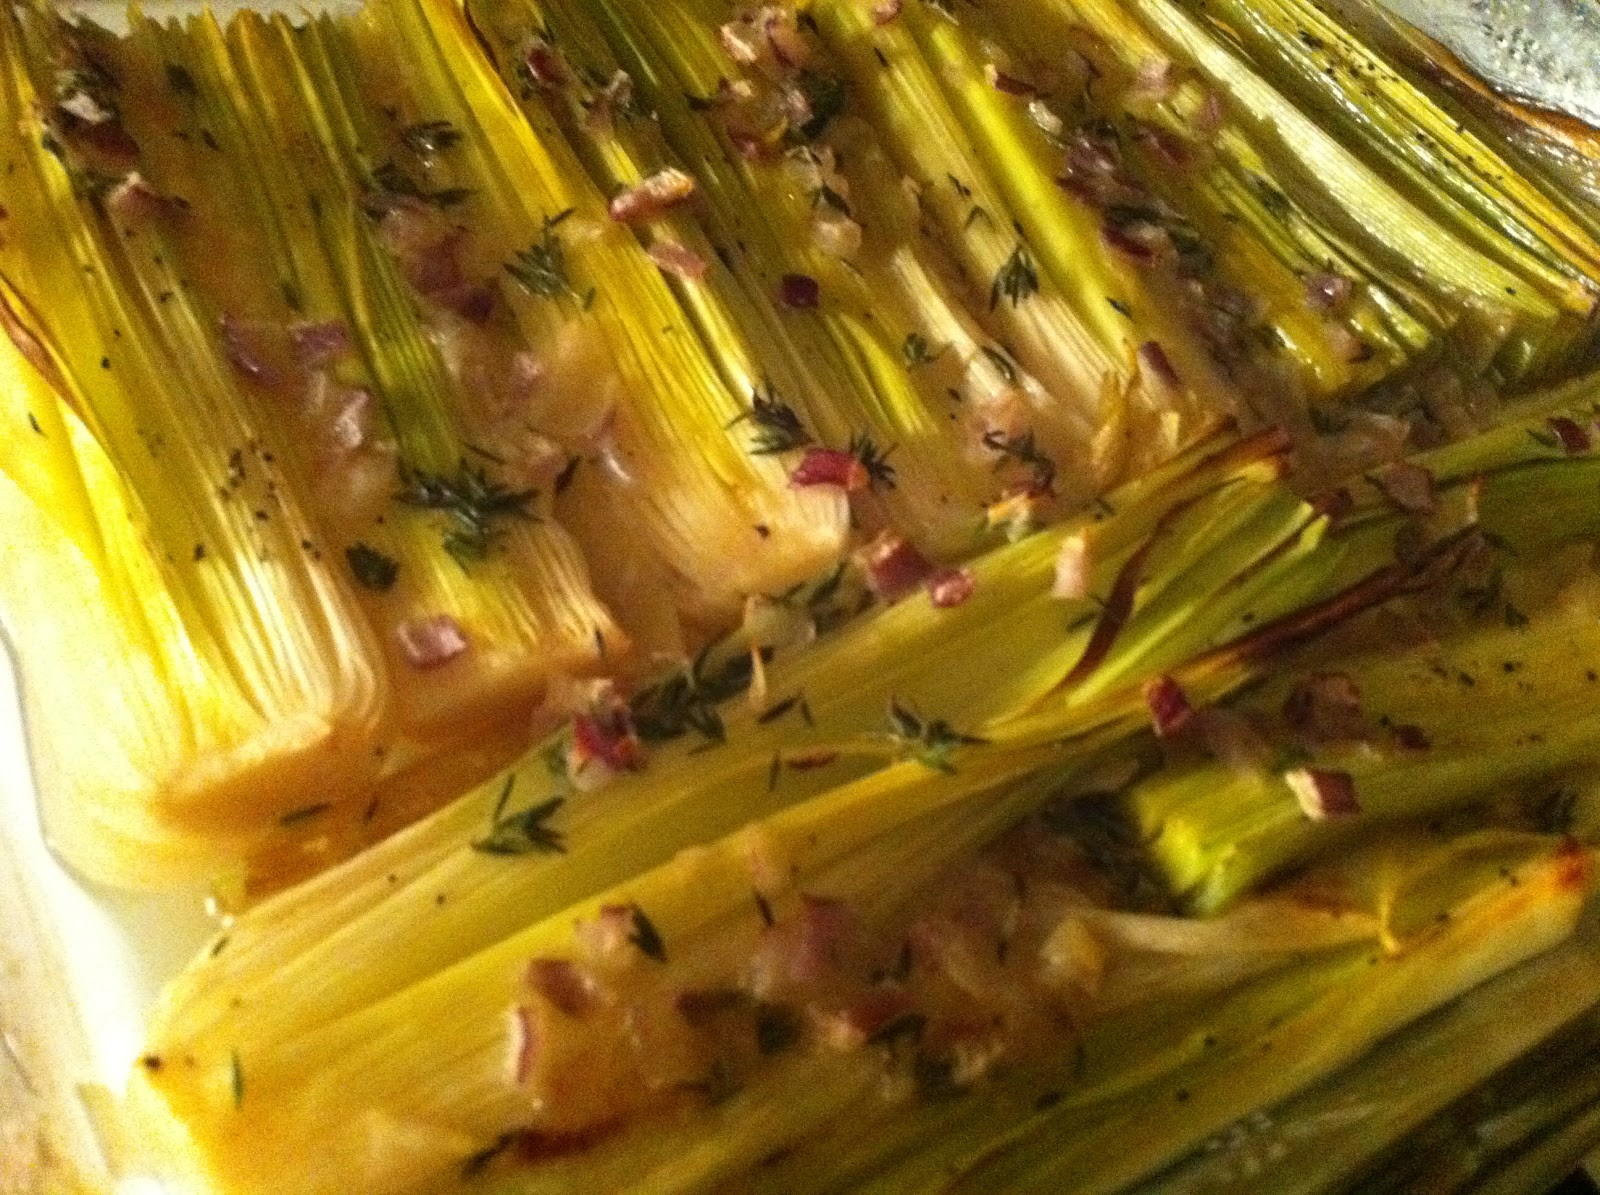 ... Scone: Sunday night soiree with Cornish game hens and braised leeks